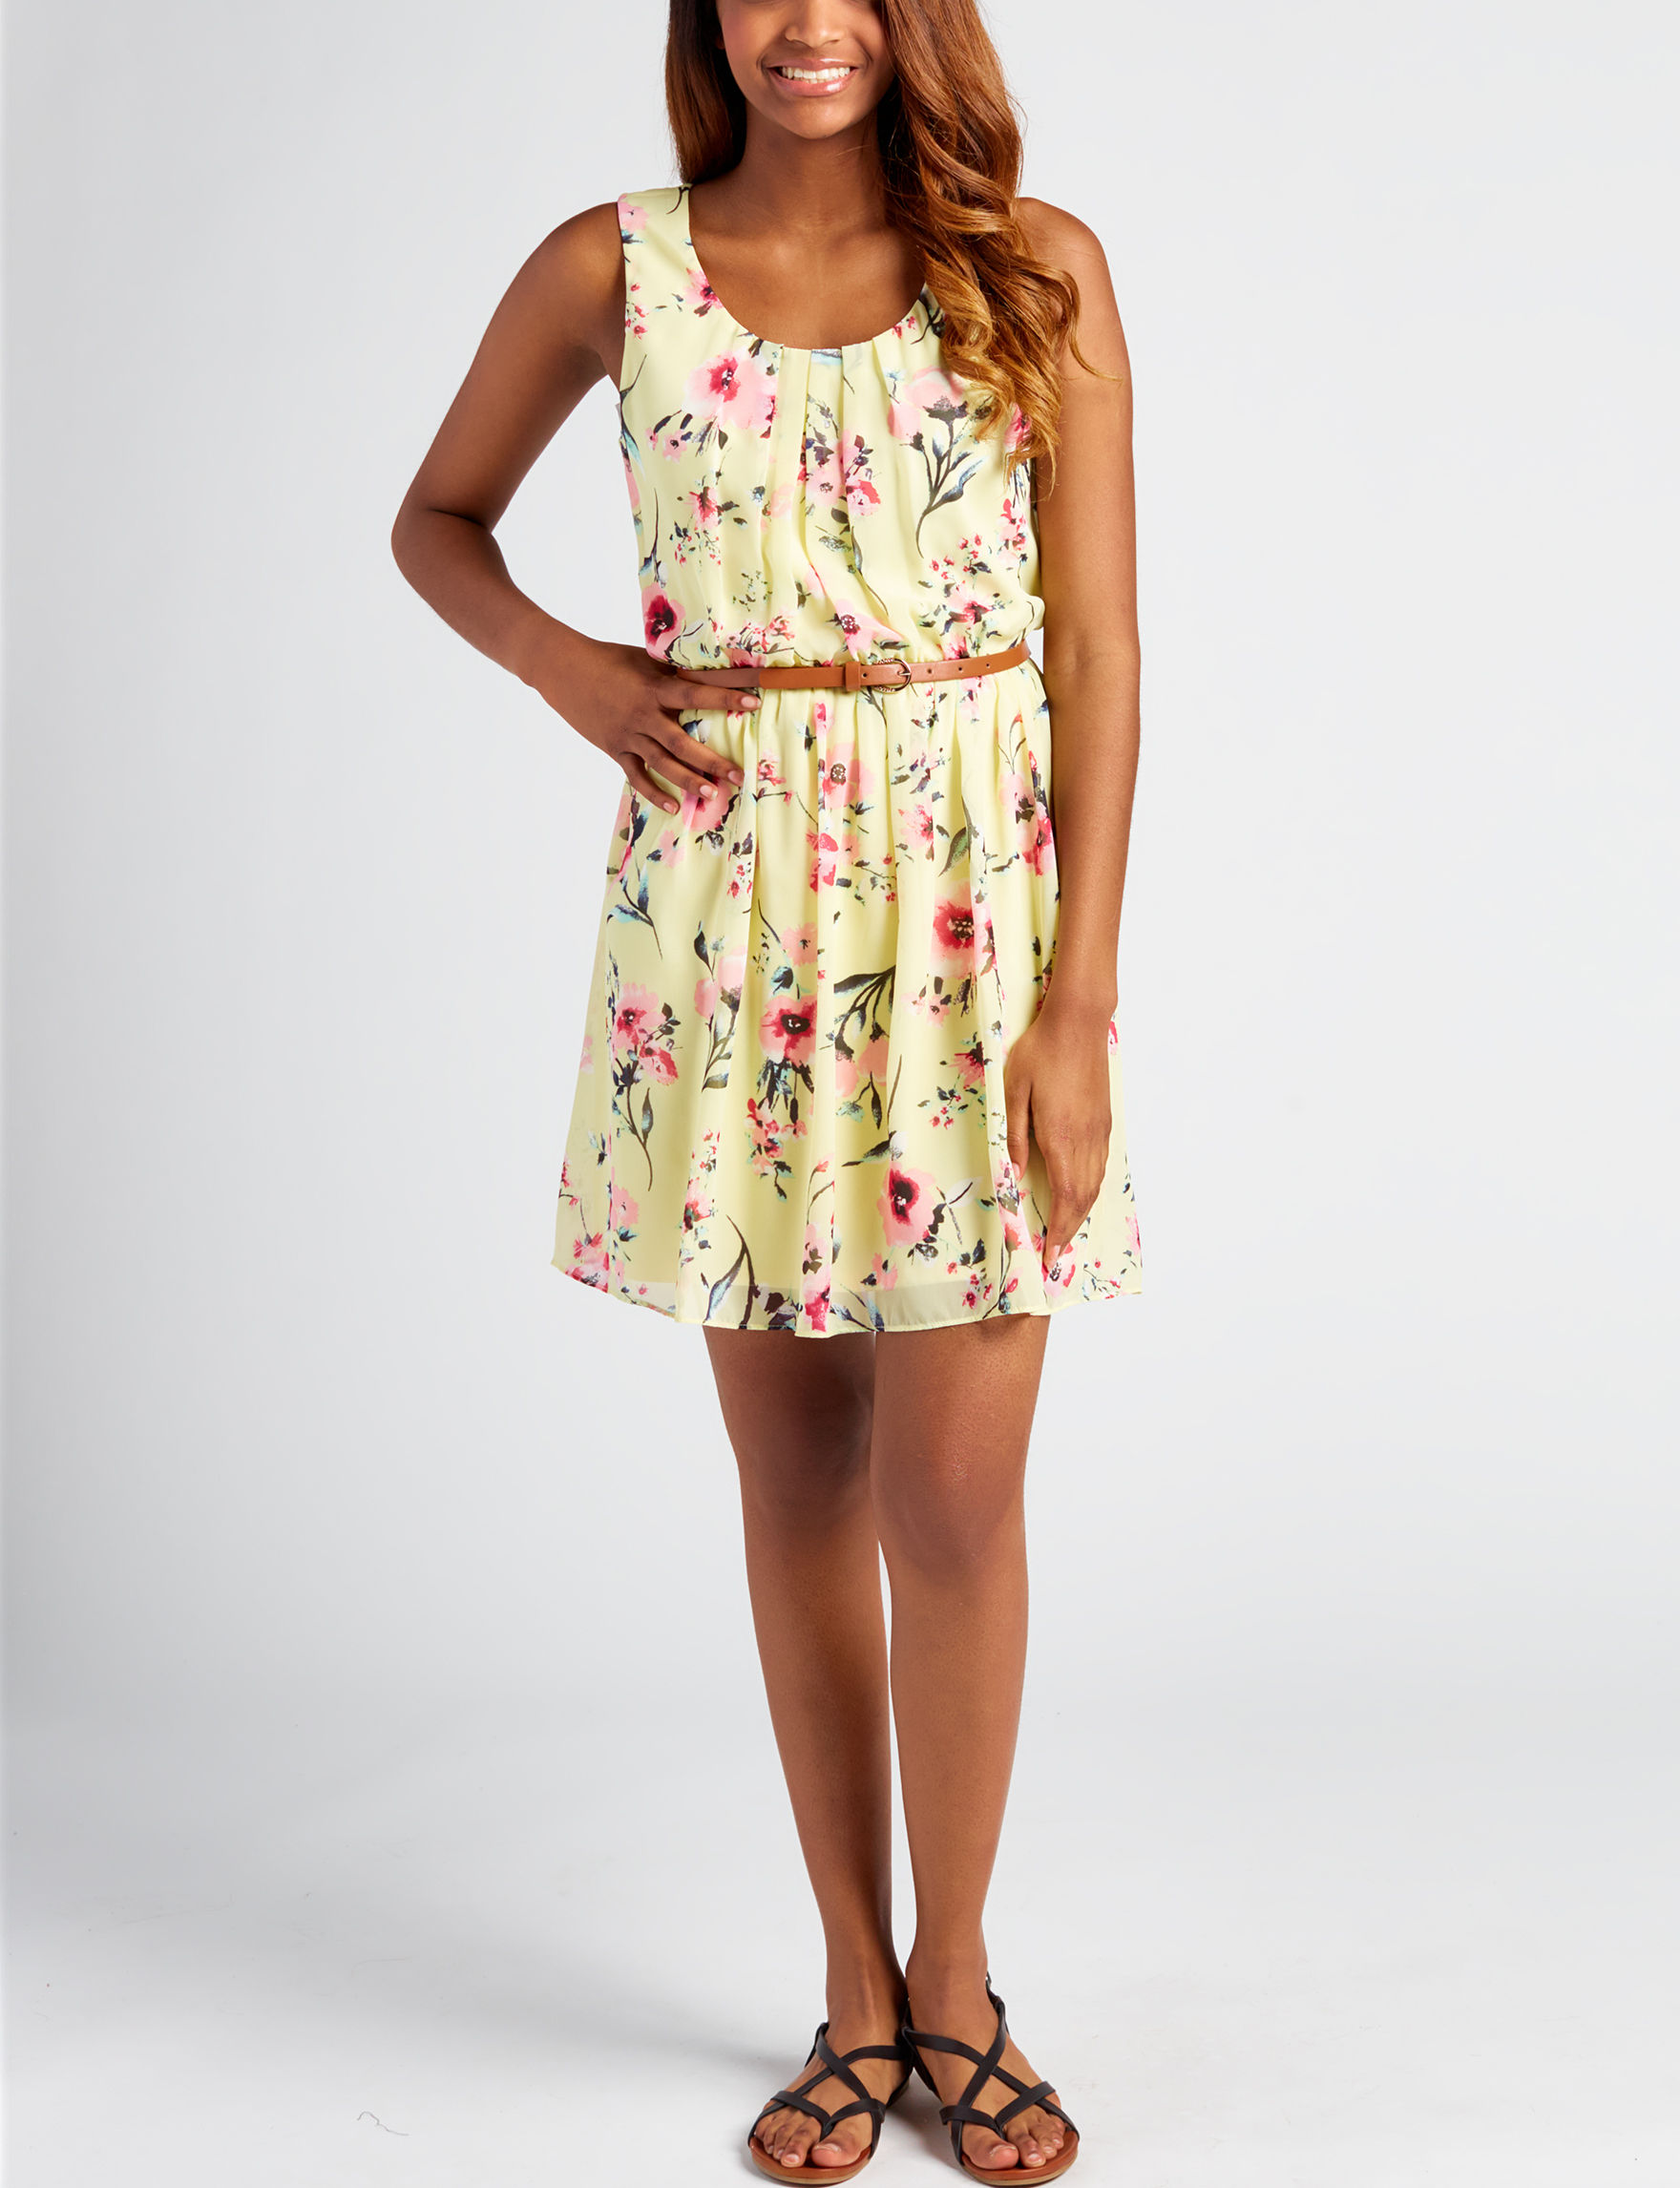 A. Byer Yellow Everyday & Casual Fit & Flare Dresses